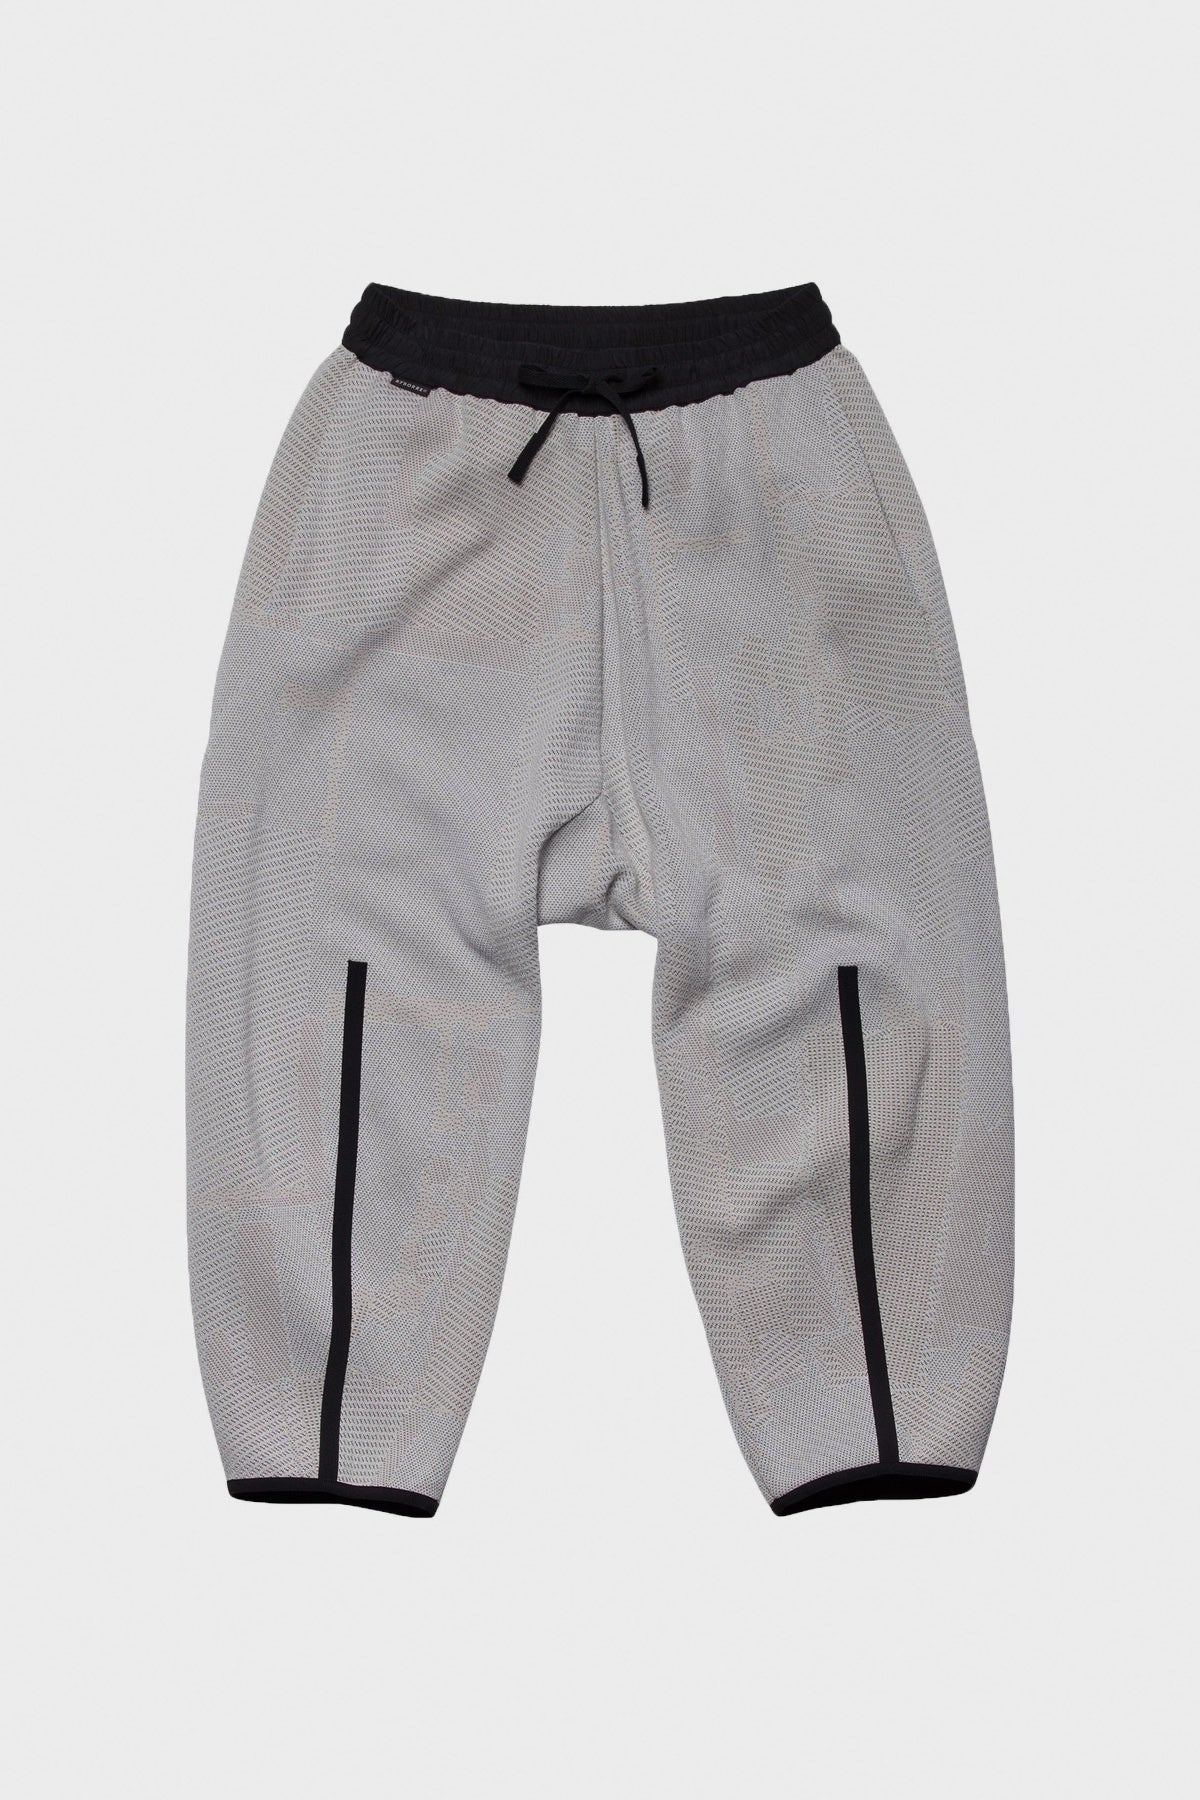 BYBORRE - Tapered Crop Pants - Stone - Canoe Club